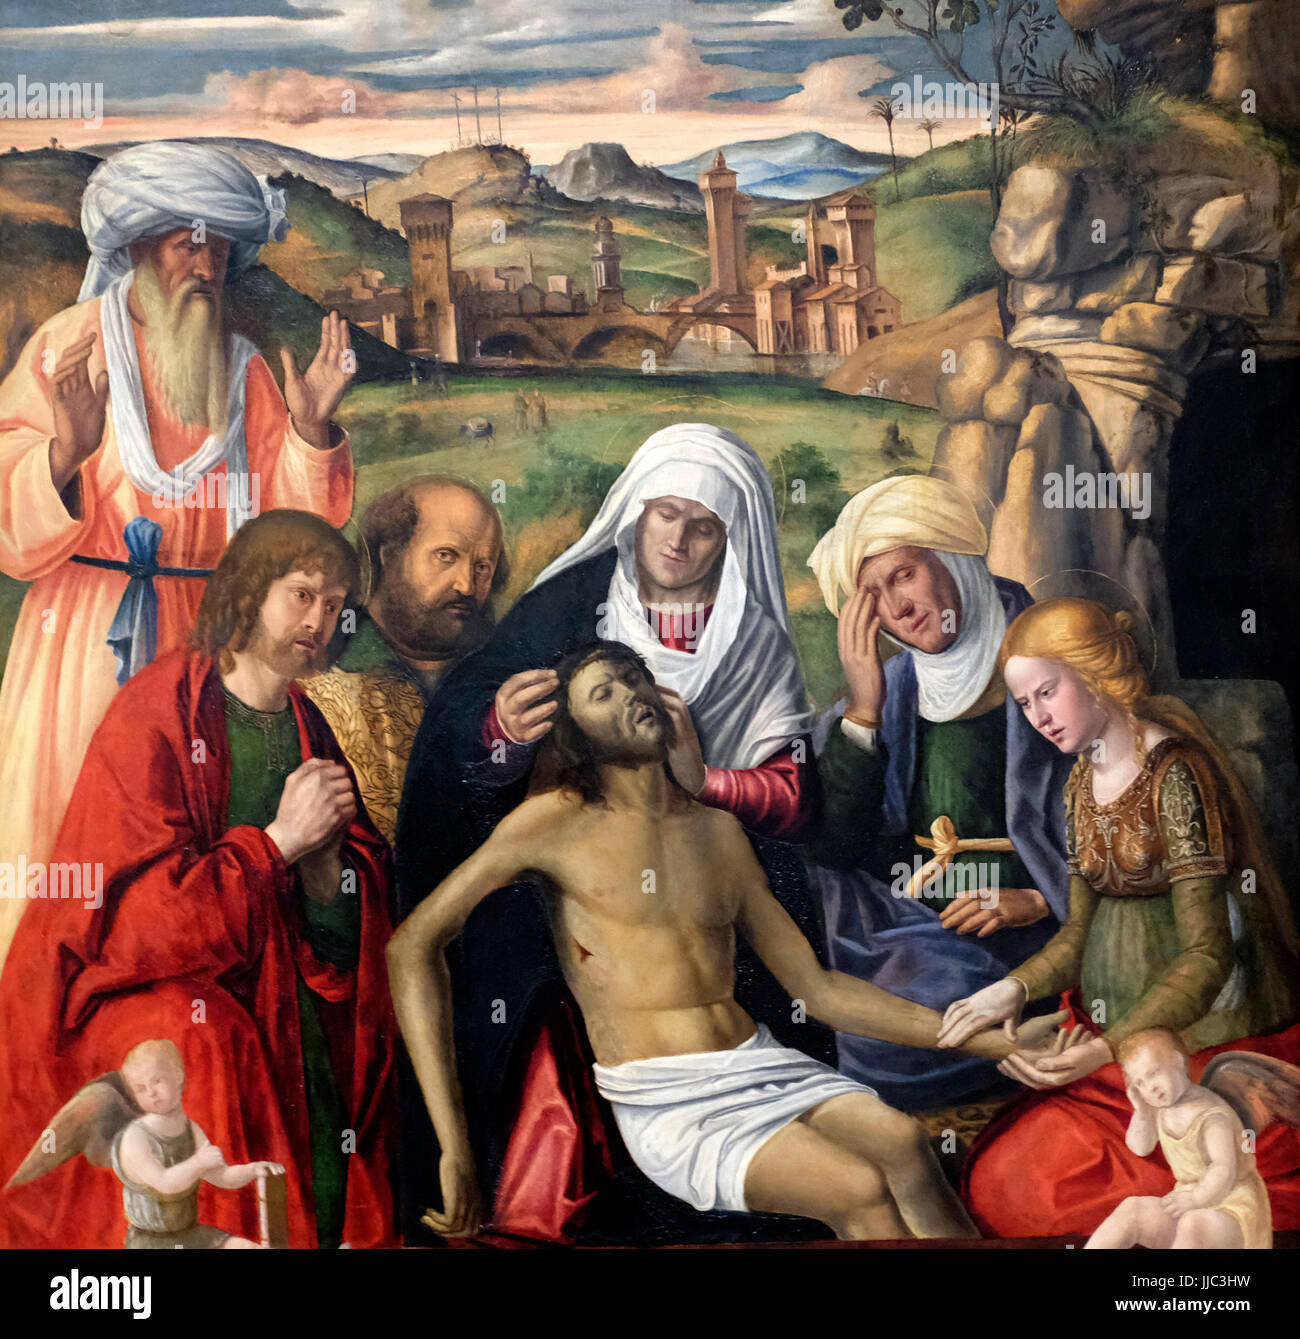 The Entombment, circa 1512 - Andrea Busati - Stock Image